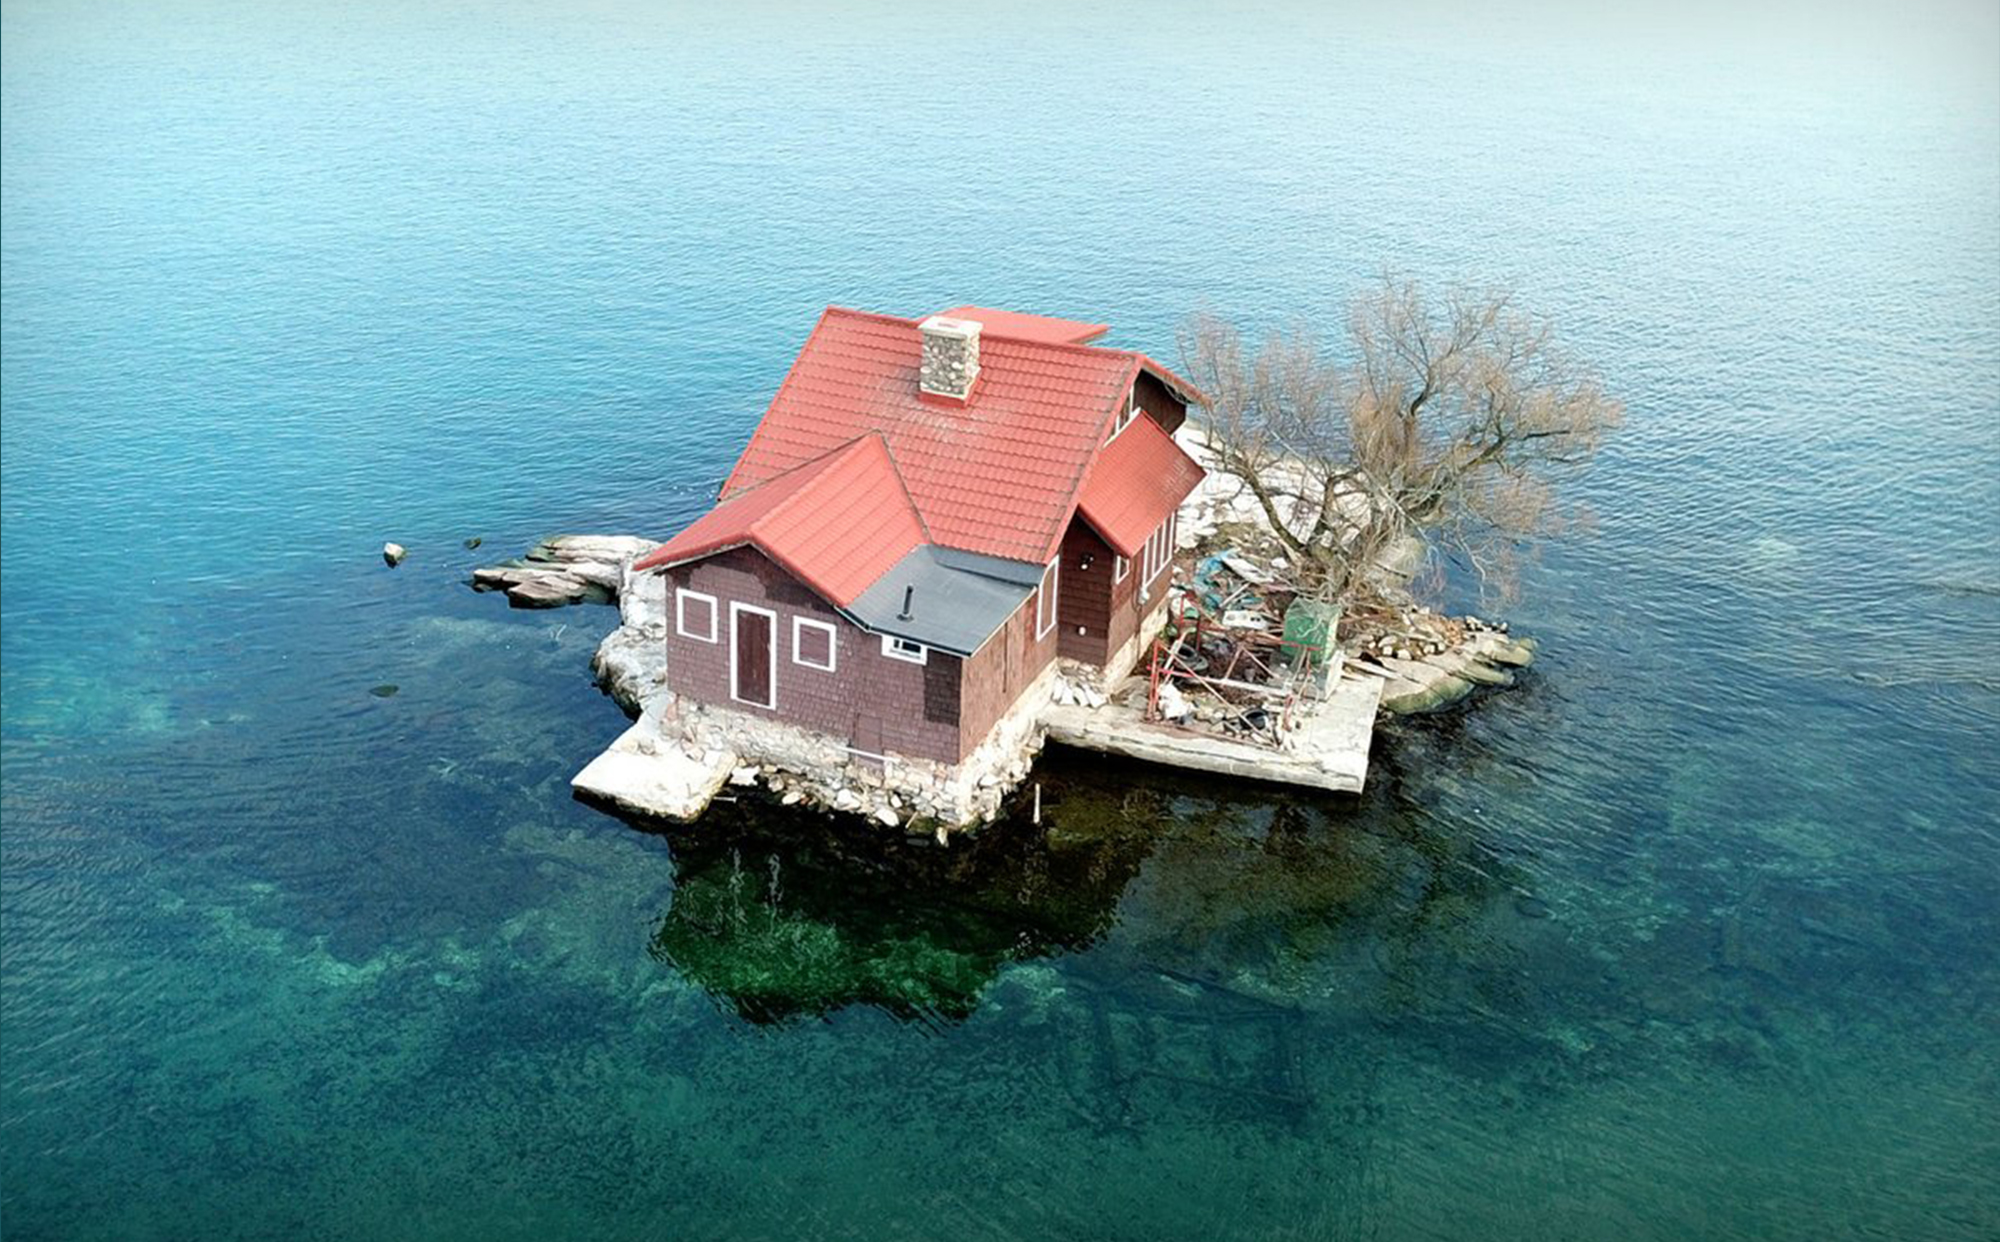 Family Lives In Tiny House On Island The Size Of A Tennis